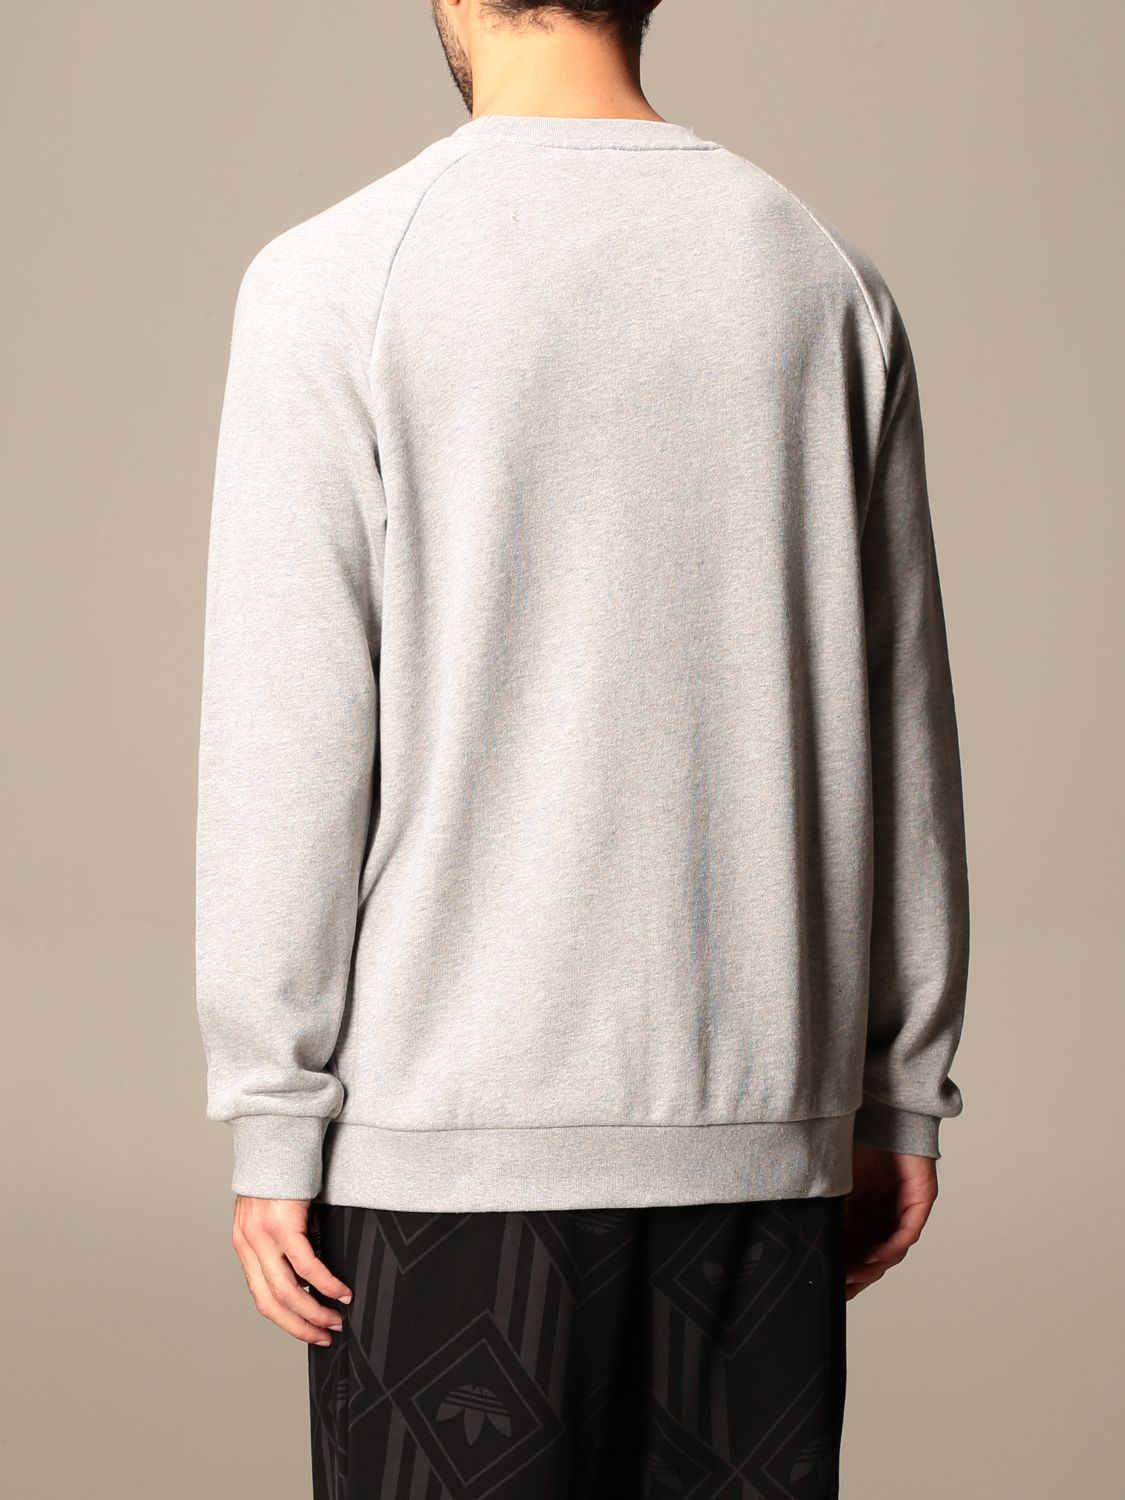 Sweatshirt Adidas Originals: Sweatshirt men Adidas Originals grey 3